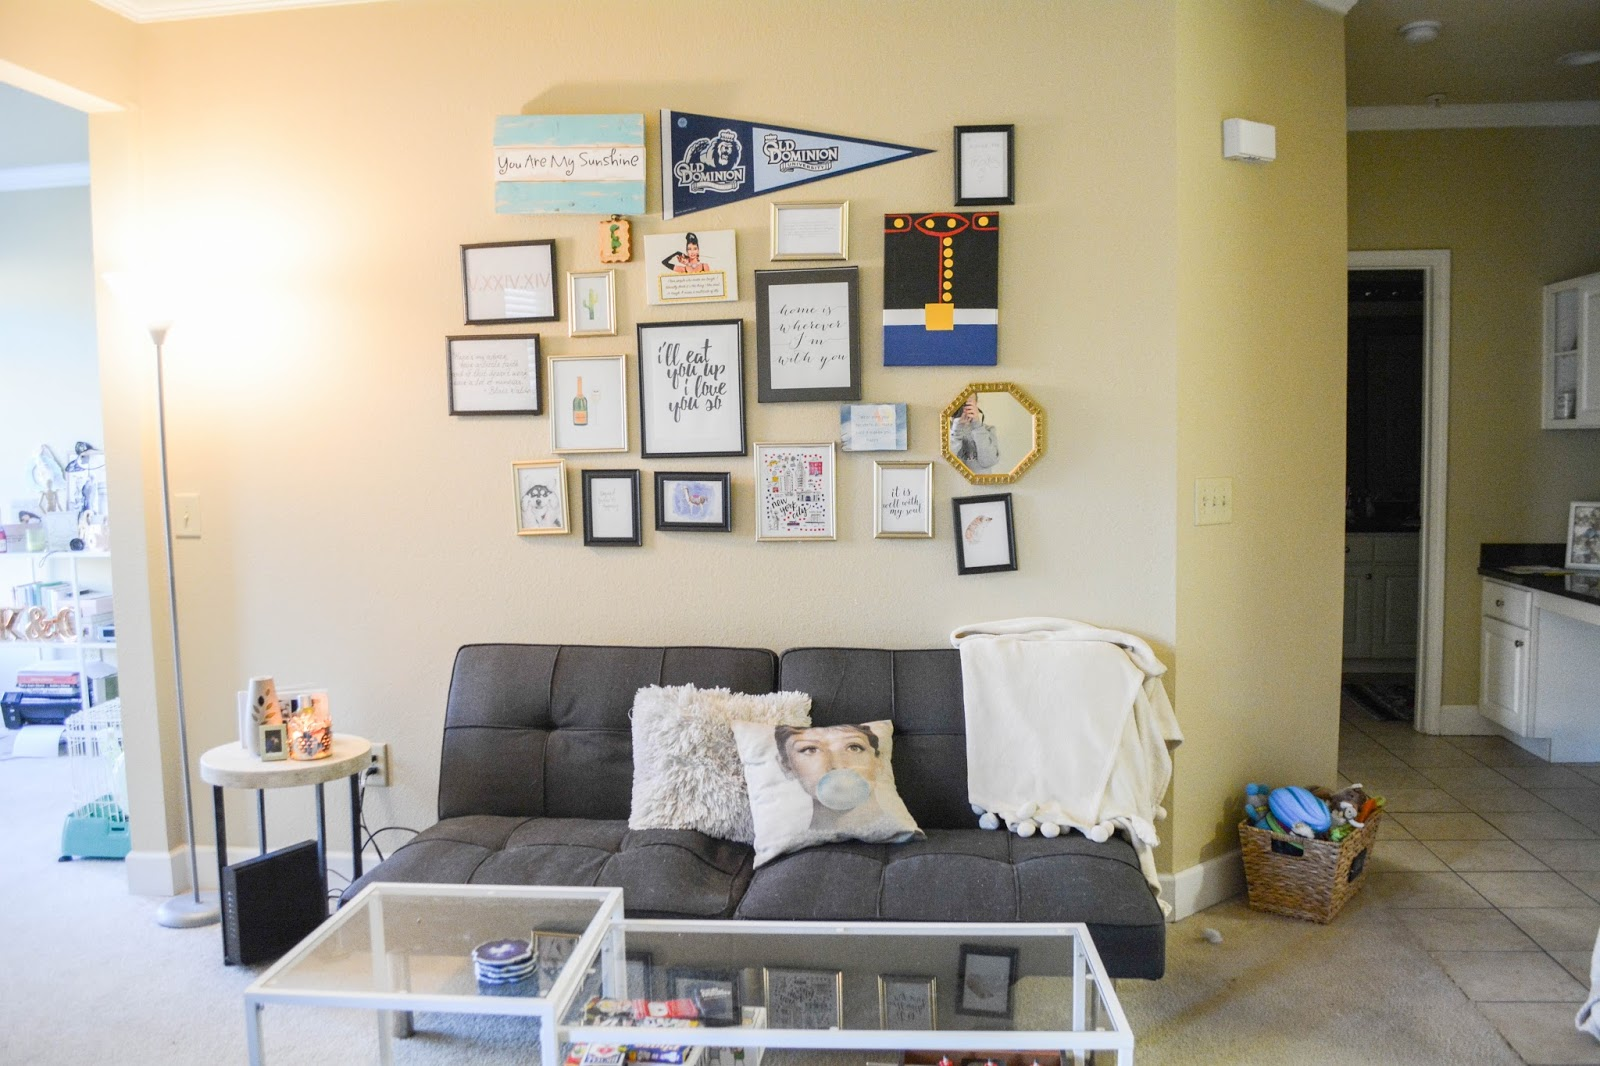 Apartment Tour: Living Room